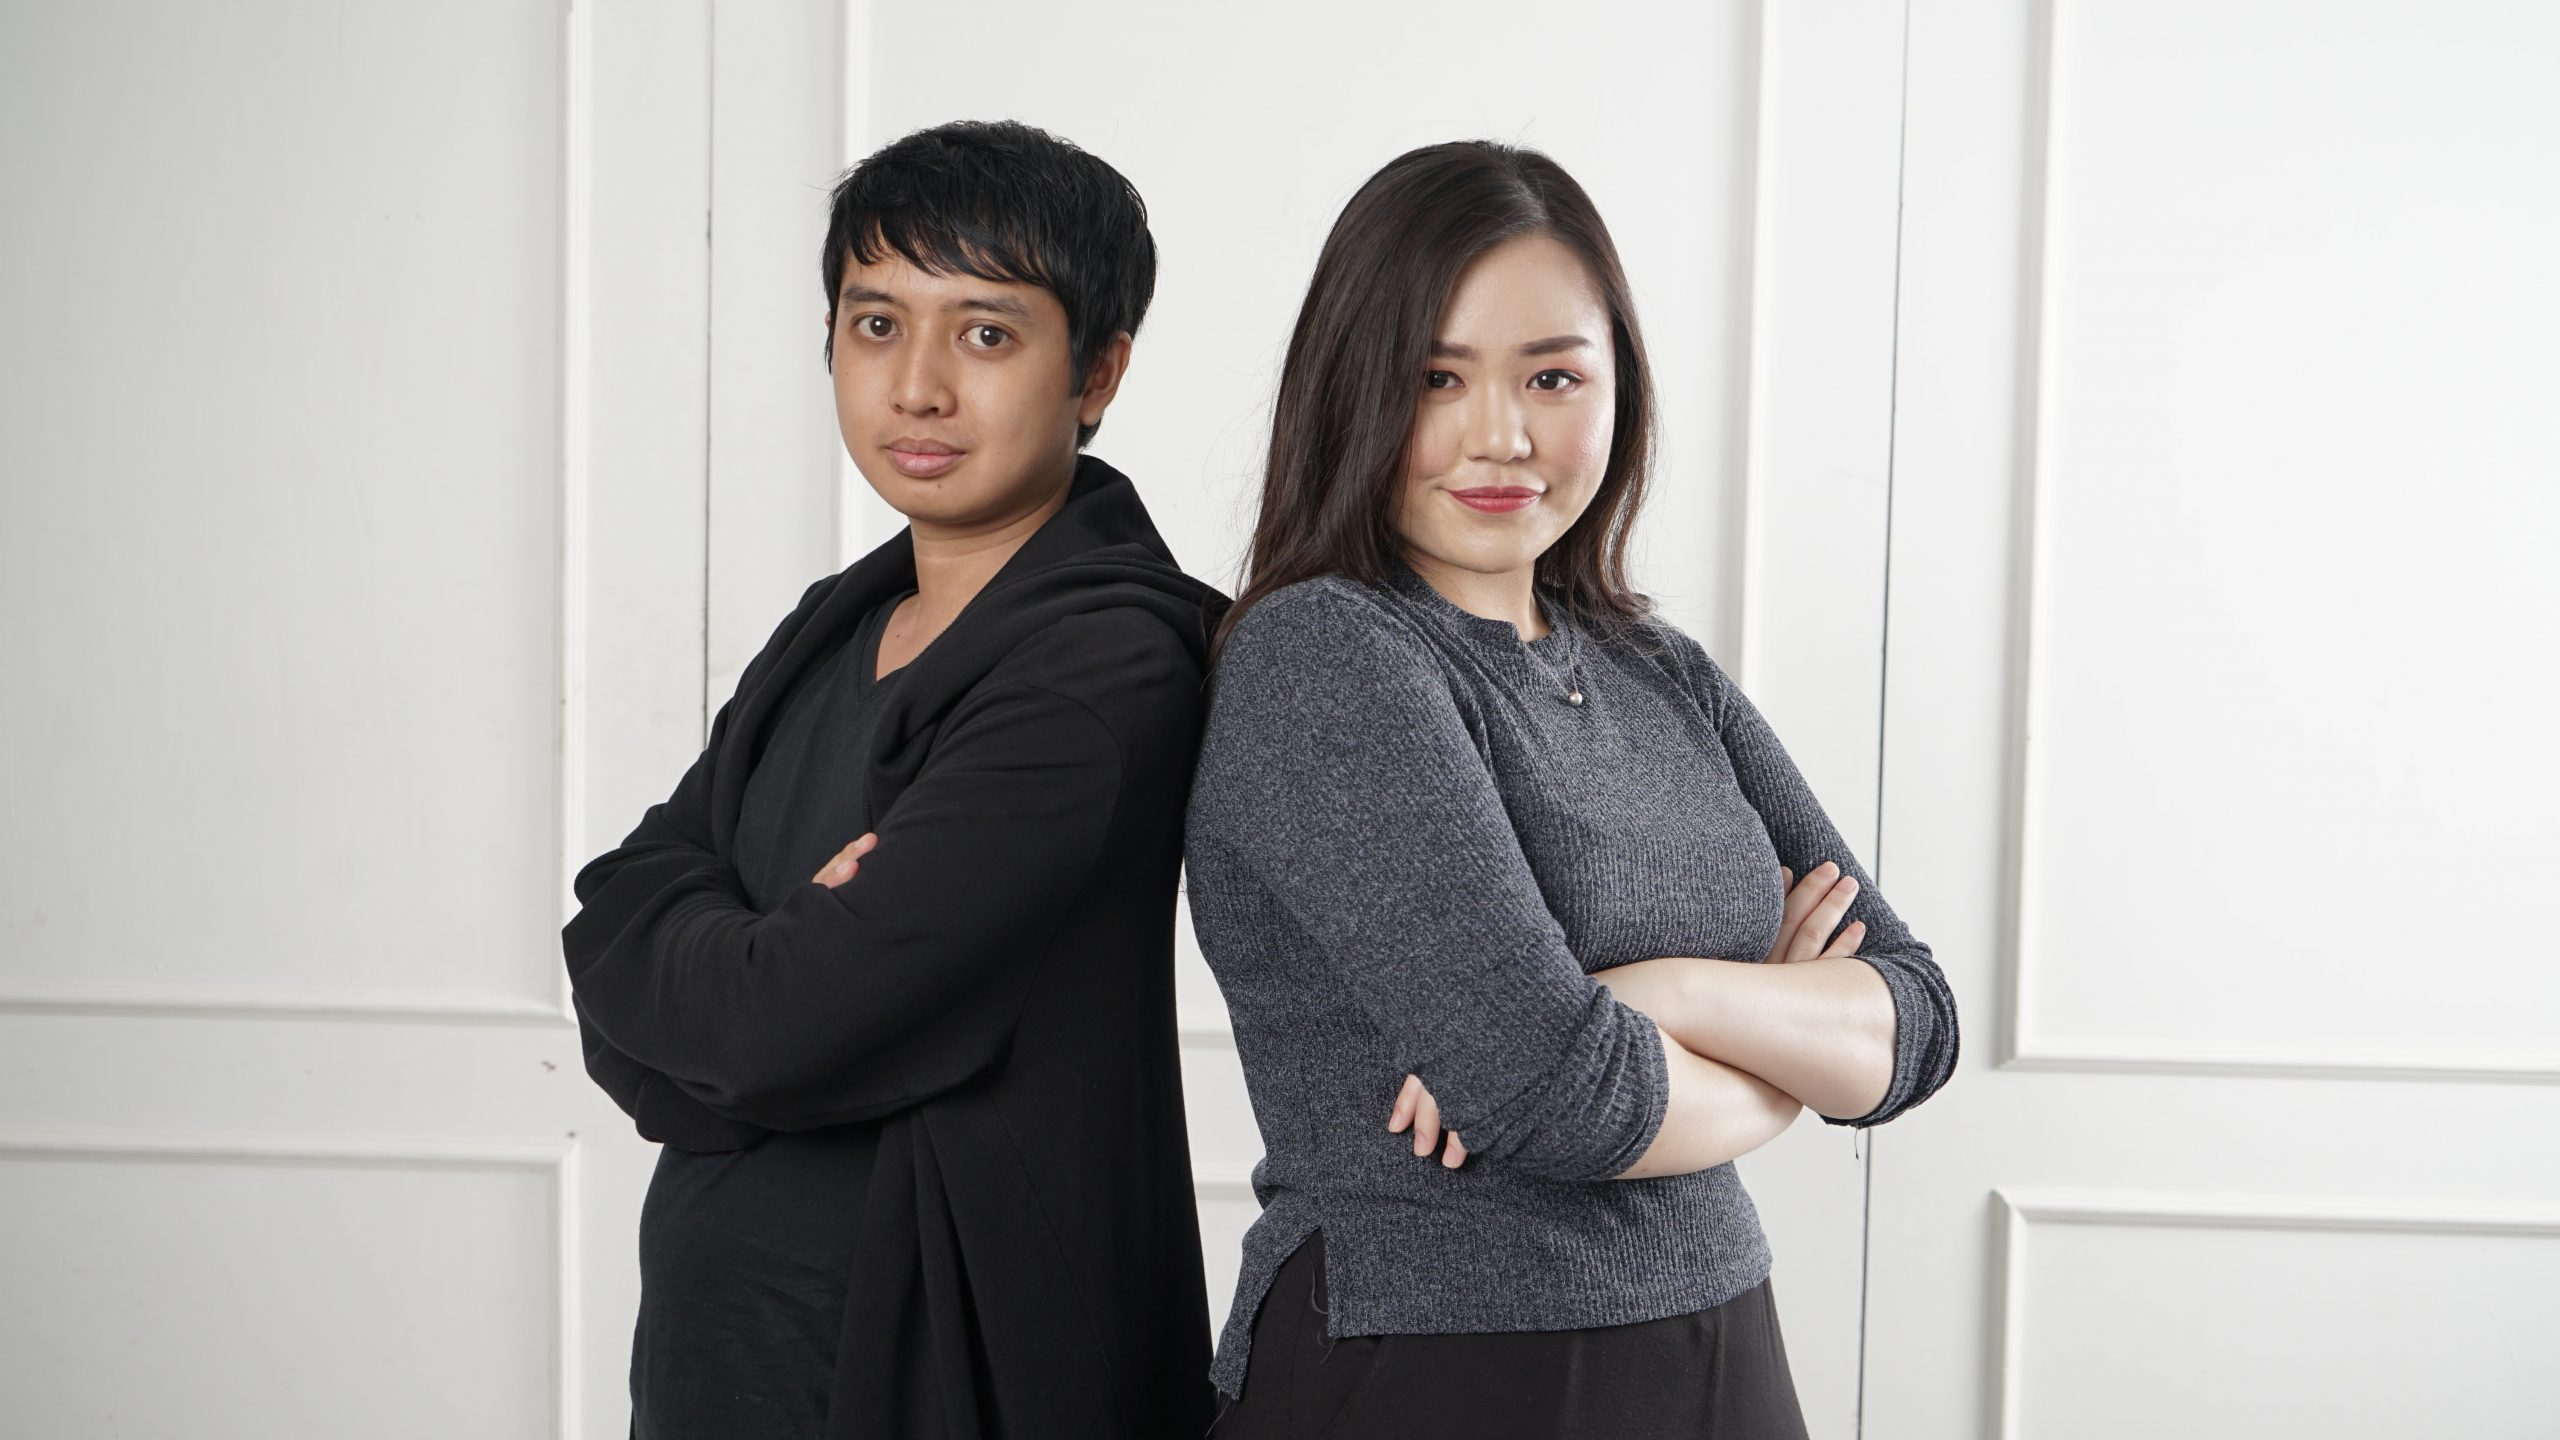 Asian Man and Asian Woman standing and smiling near white background.